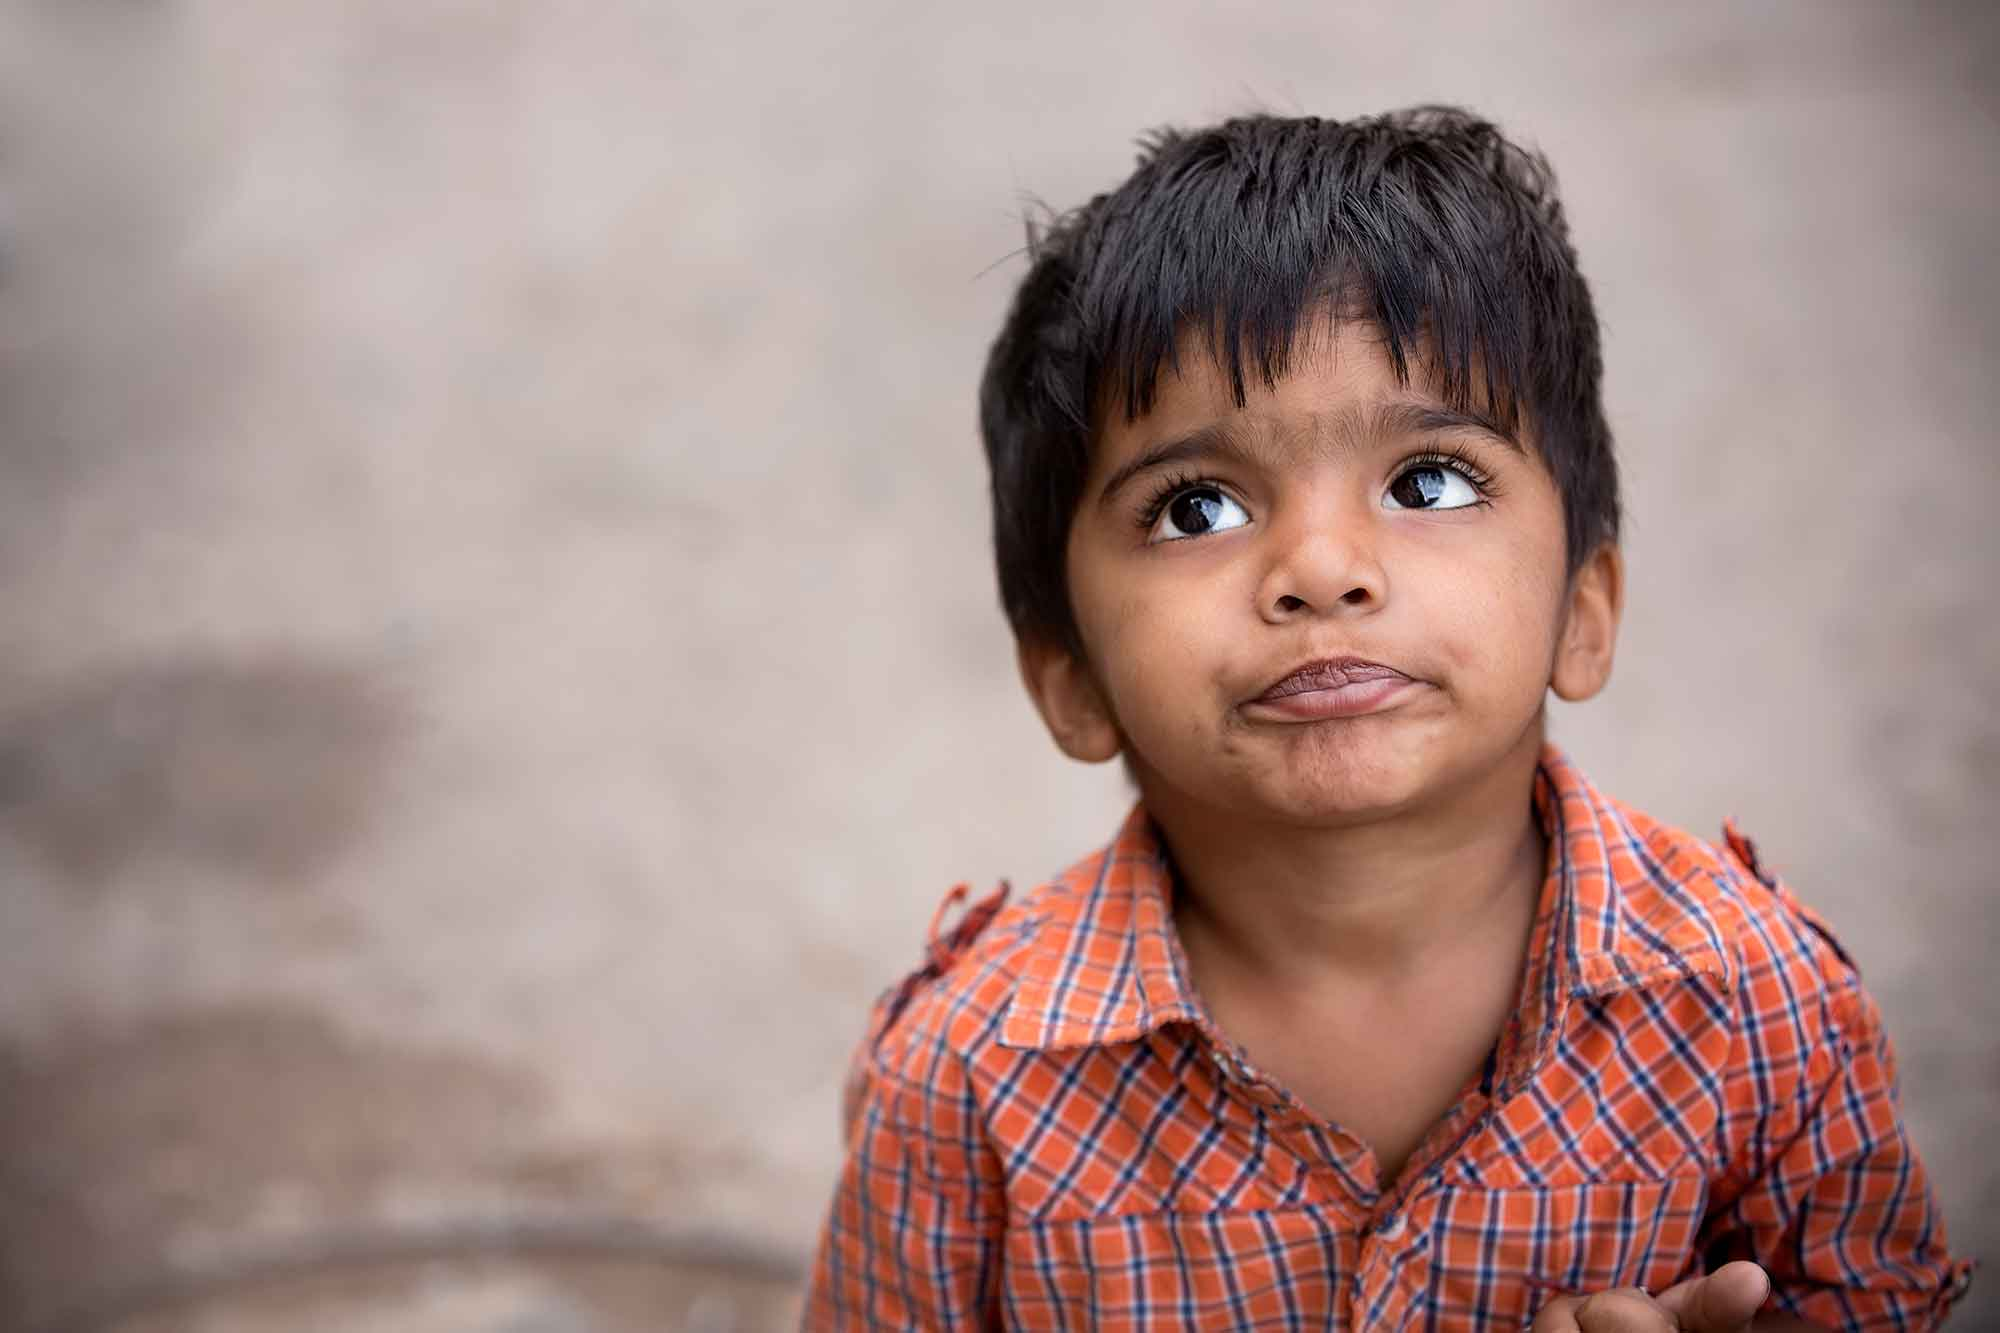 portrait-little-boy-india